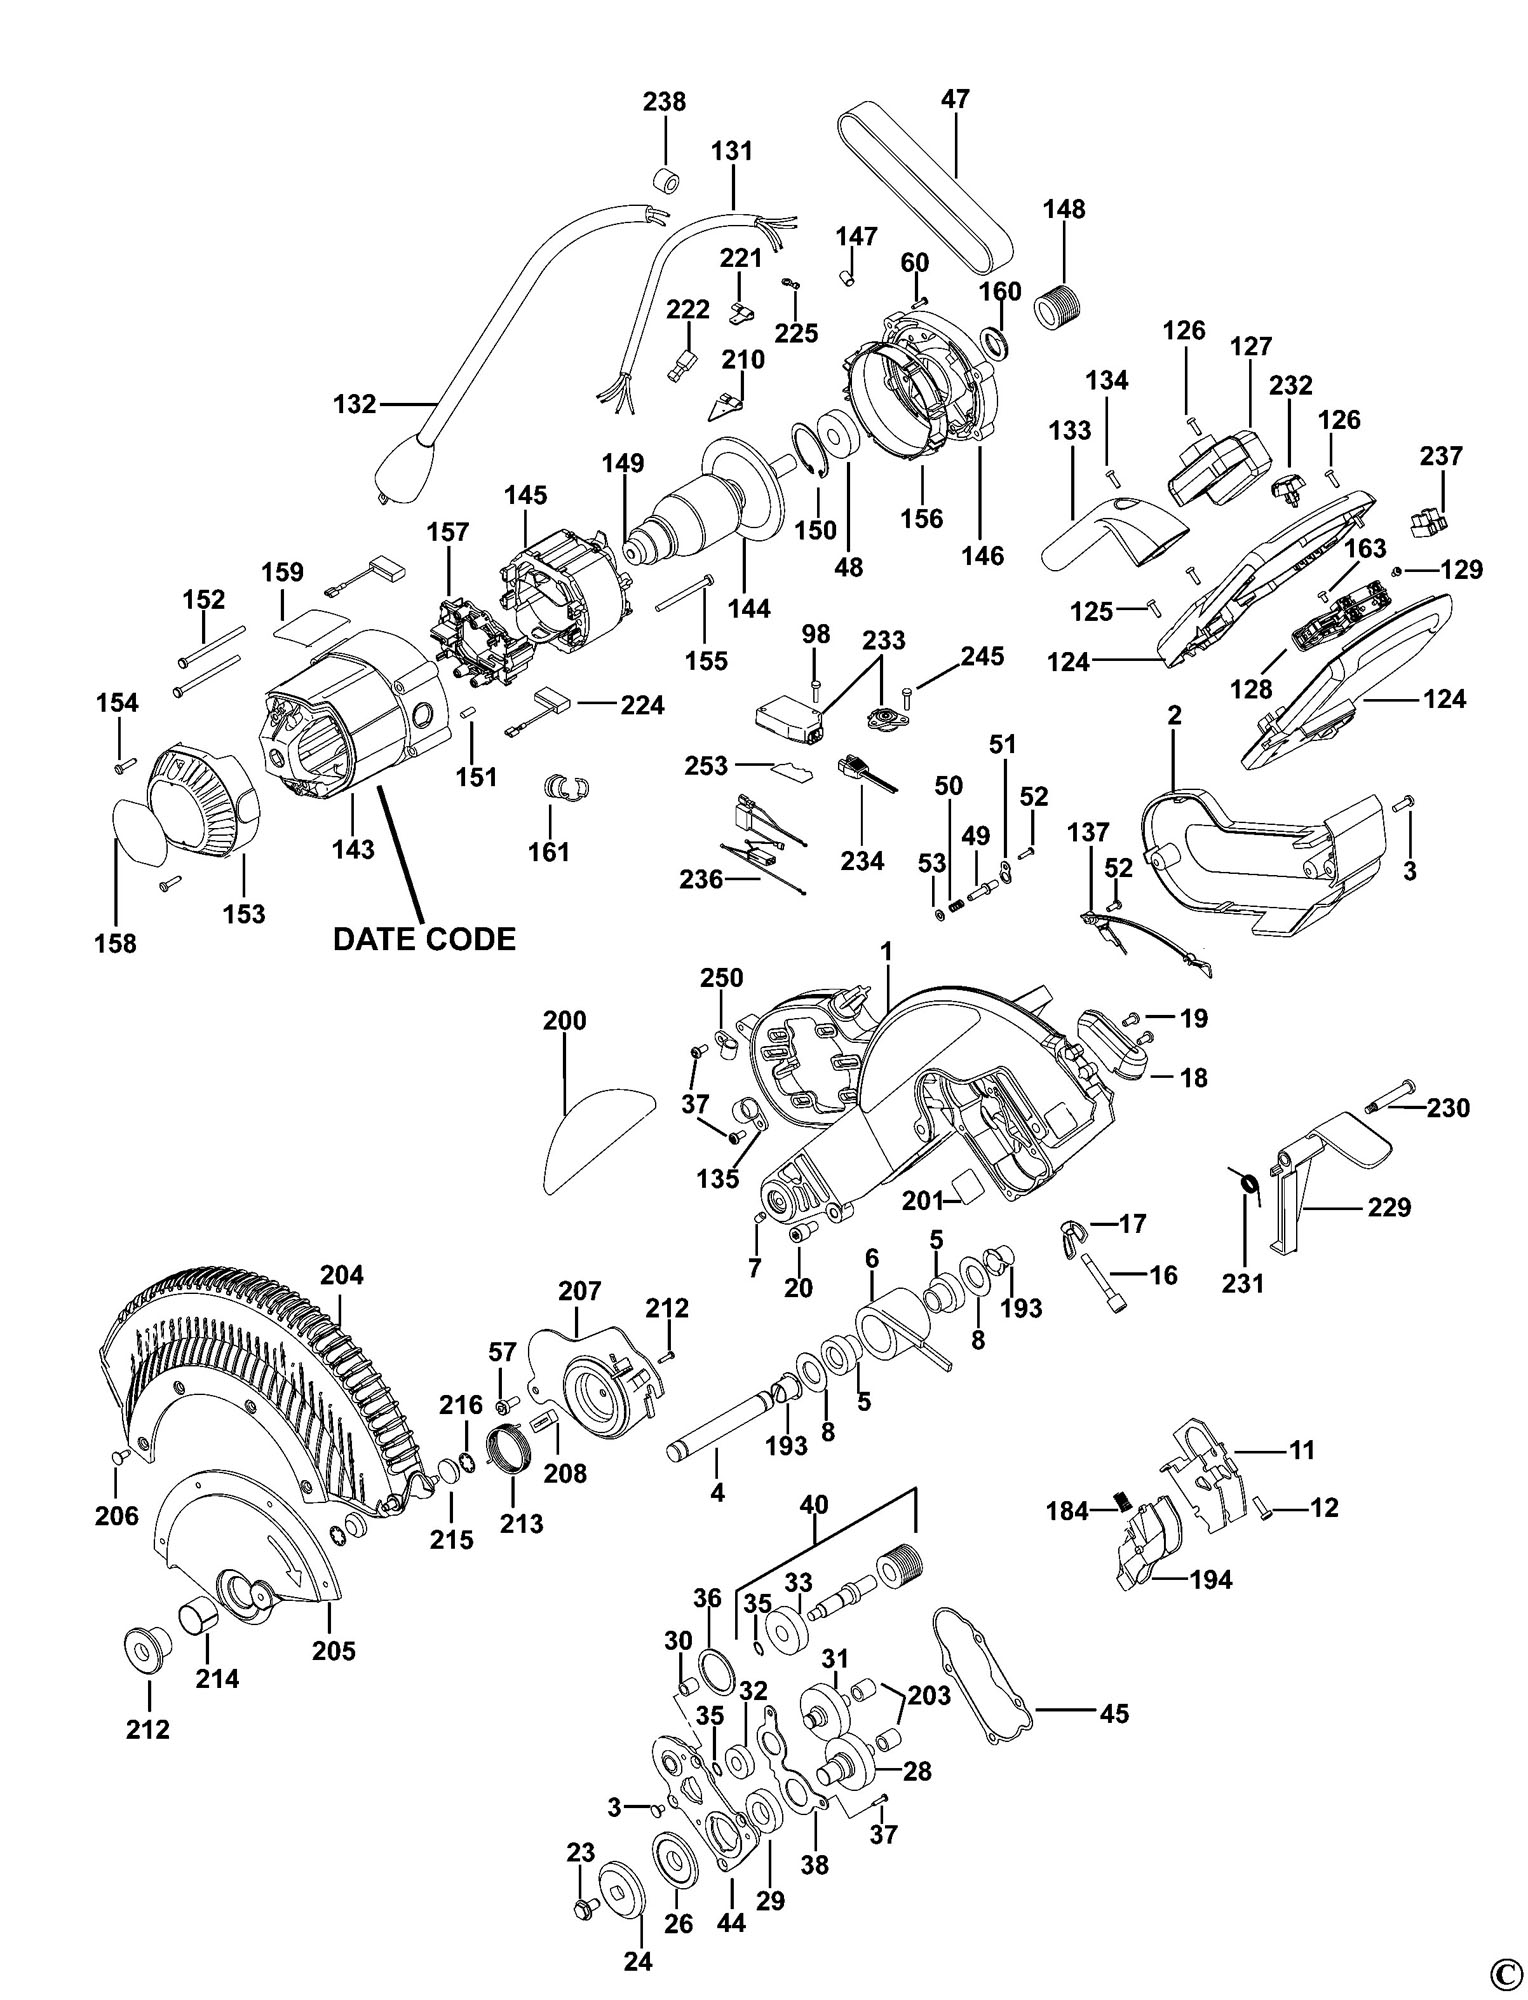 Dewalt Saw Parts Diagram Wiring